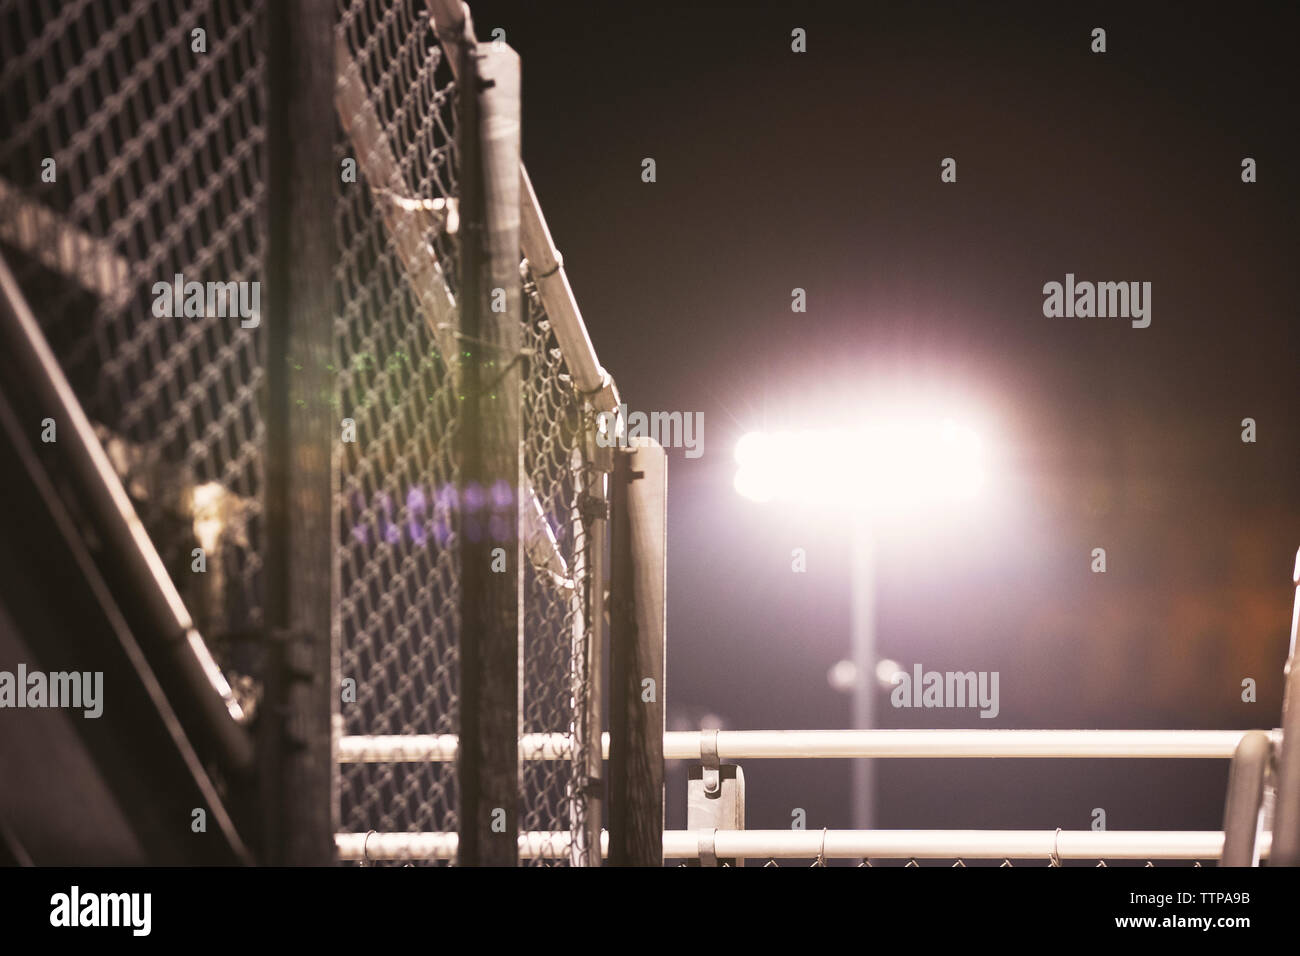 Low angle view of illuminated floodlight against sky at American football stadium - Stock Image